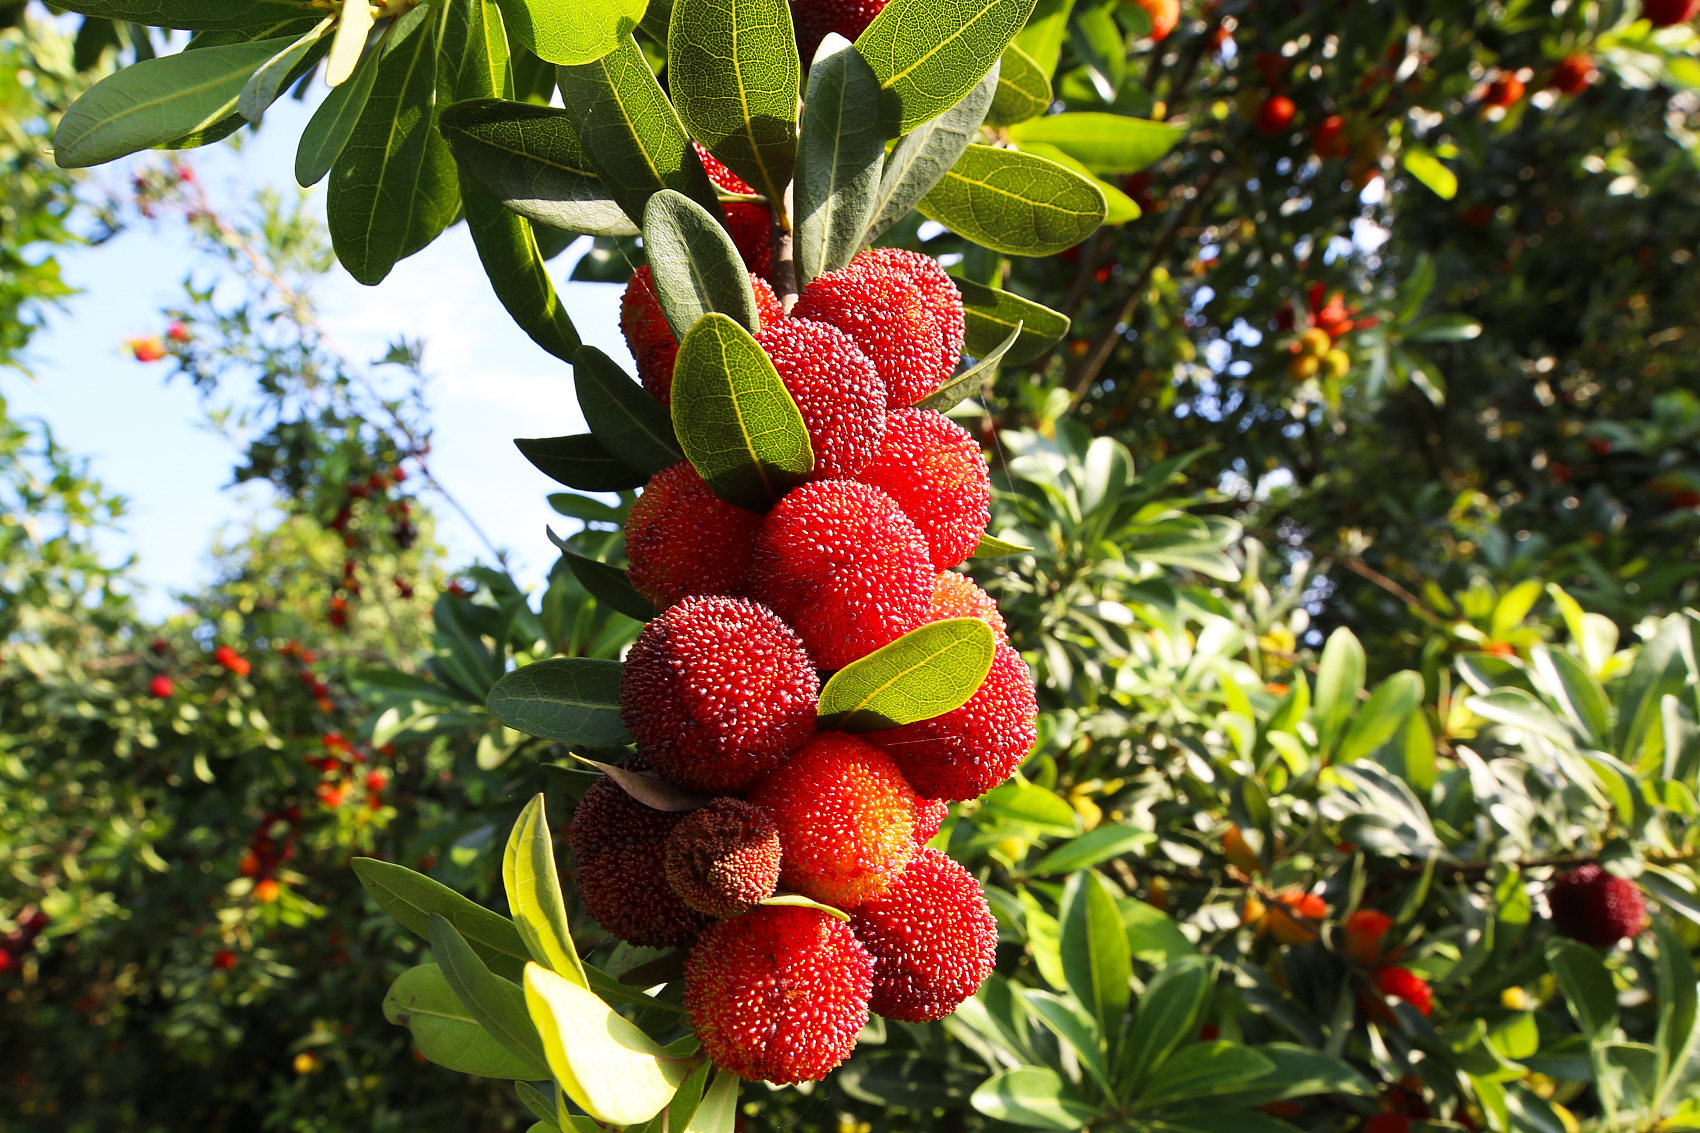 Favorable policies help fruit farmers shake off poverty